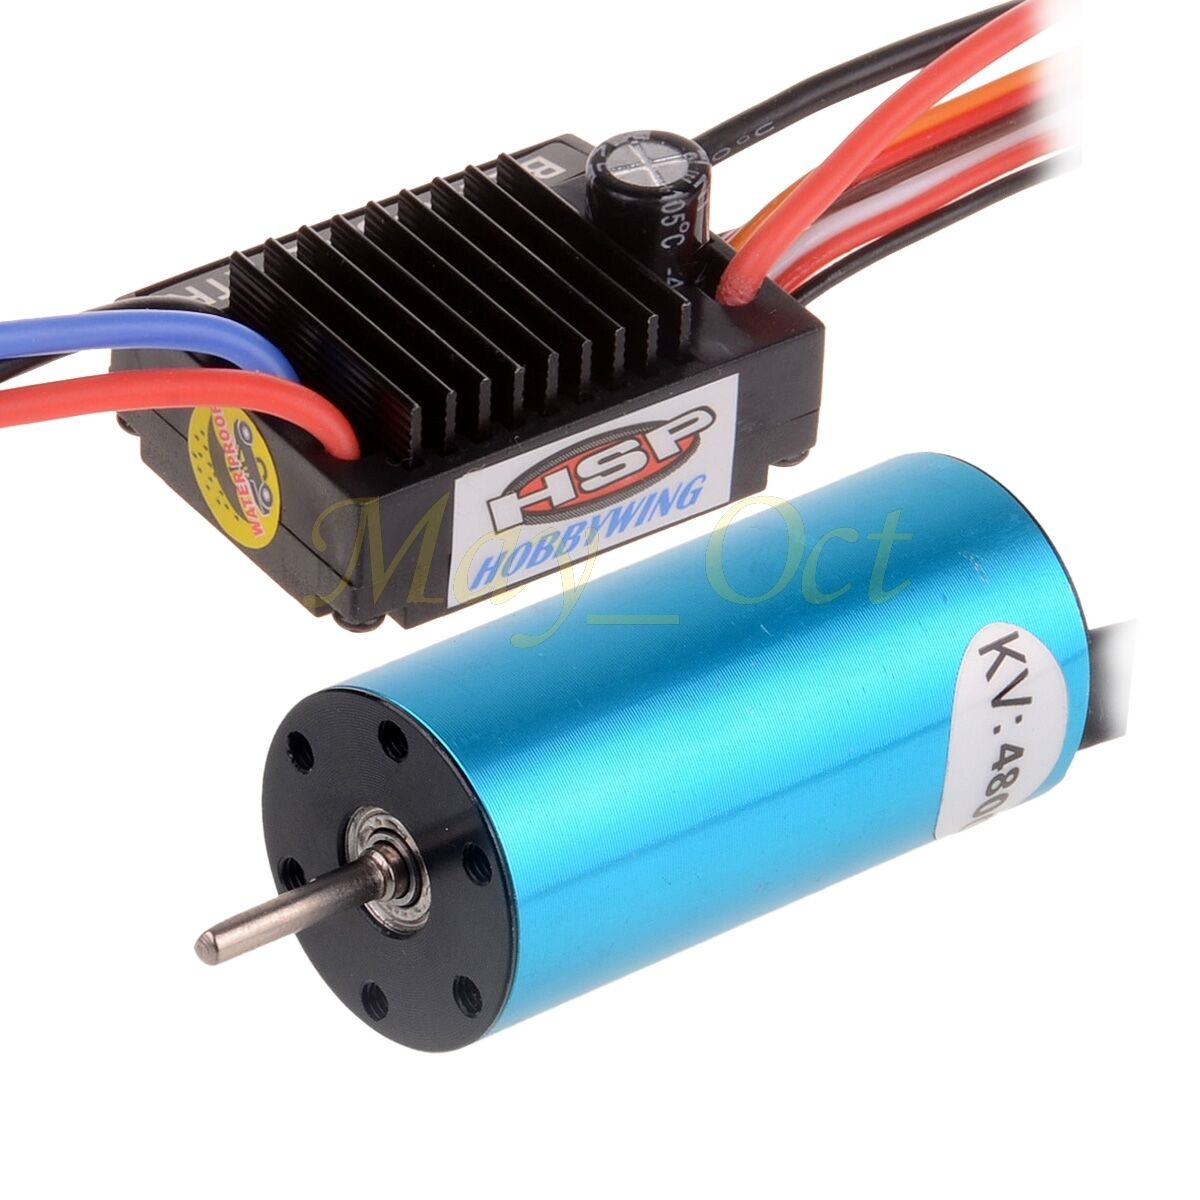 HSP 1 16 4800KV 2040SL Brushless Motor 25A WaterProof  BRUSHED ESC BLESC-S16E  vendita outlet